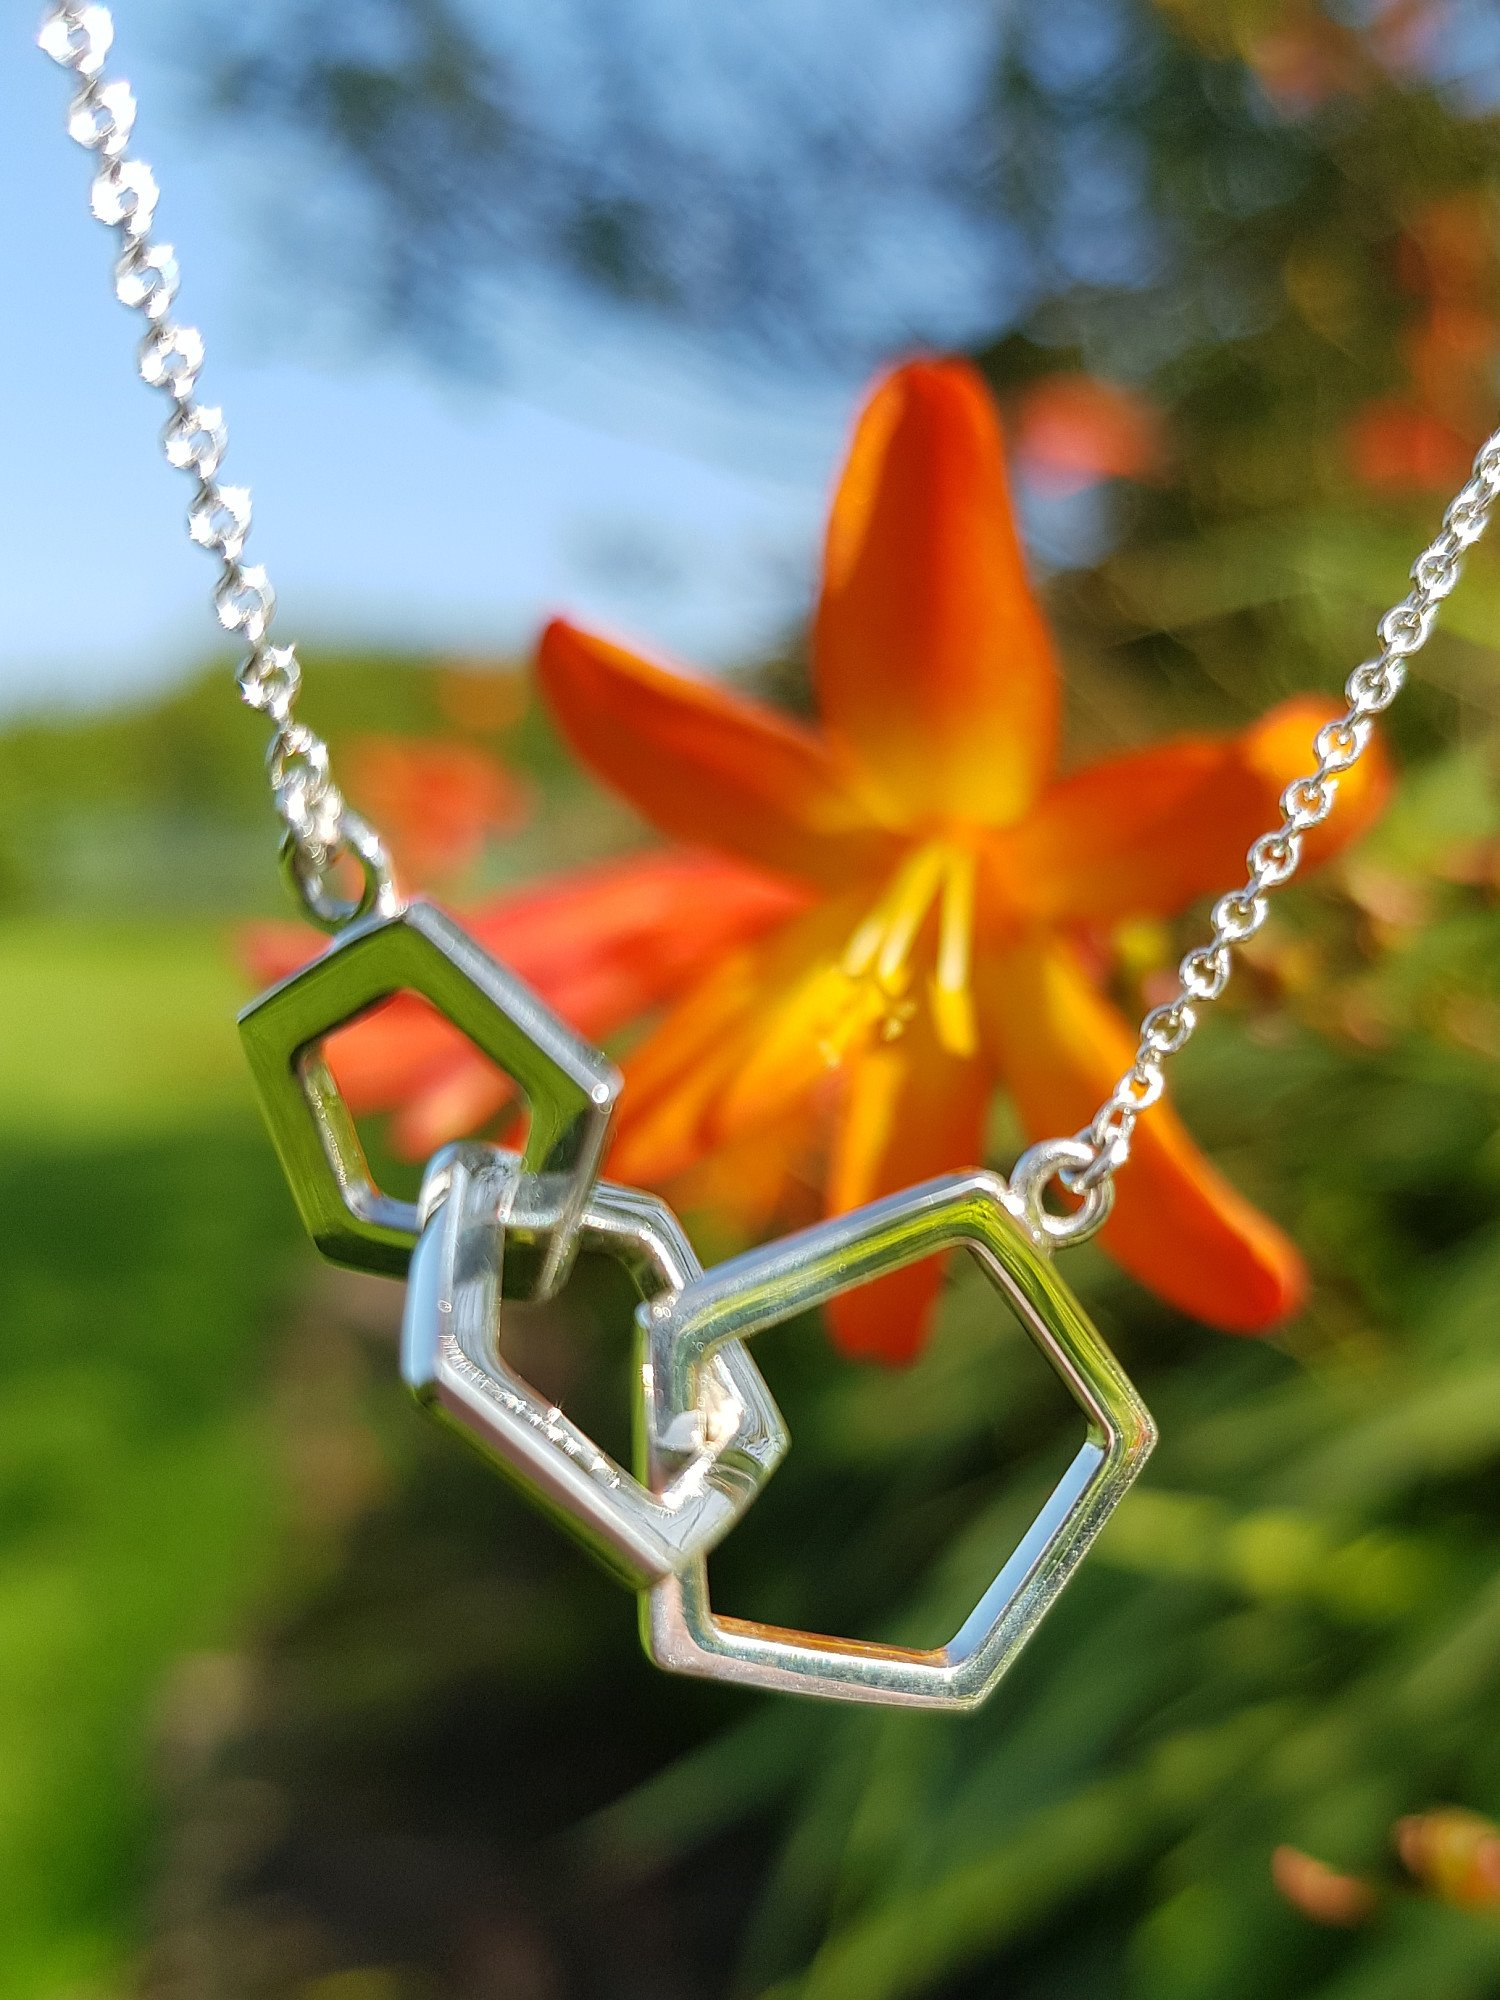 SAVE 20% ON THIS GORGEOUS NECKLACE FROM CALLIBEAU JEWELLERY - SNIZL EXCLUSIVE